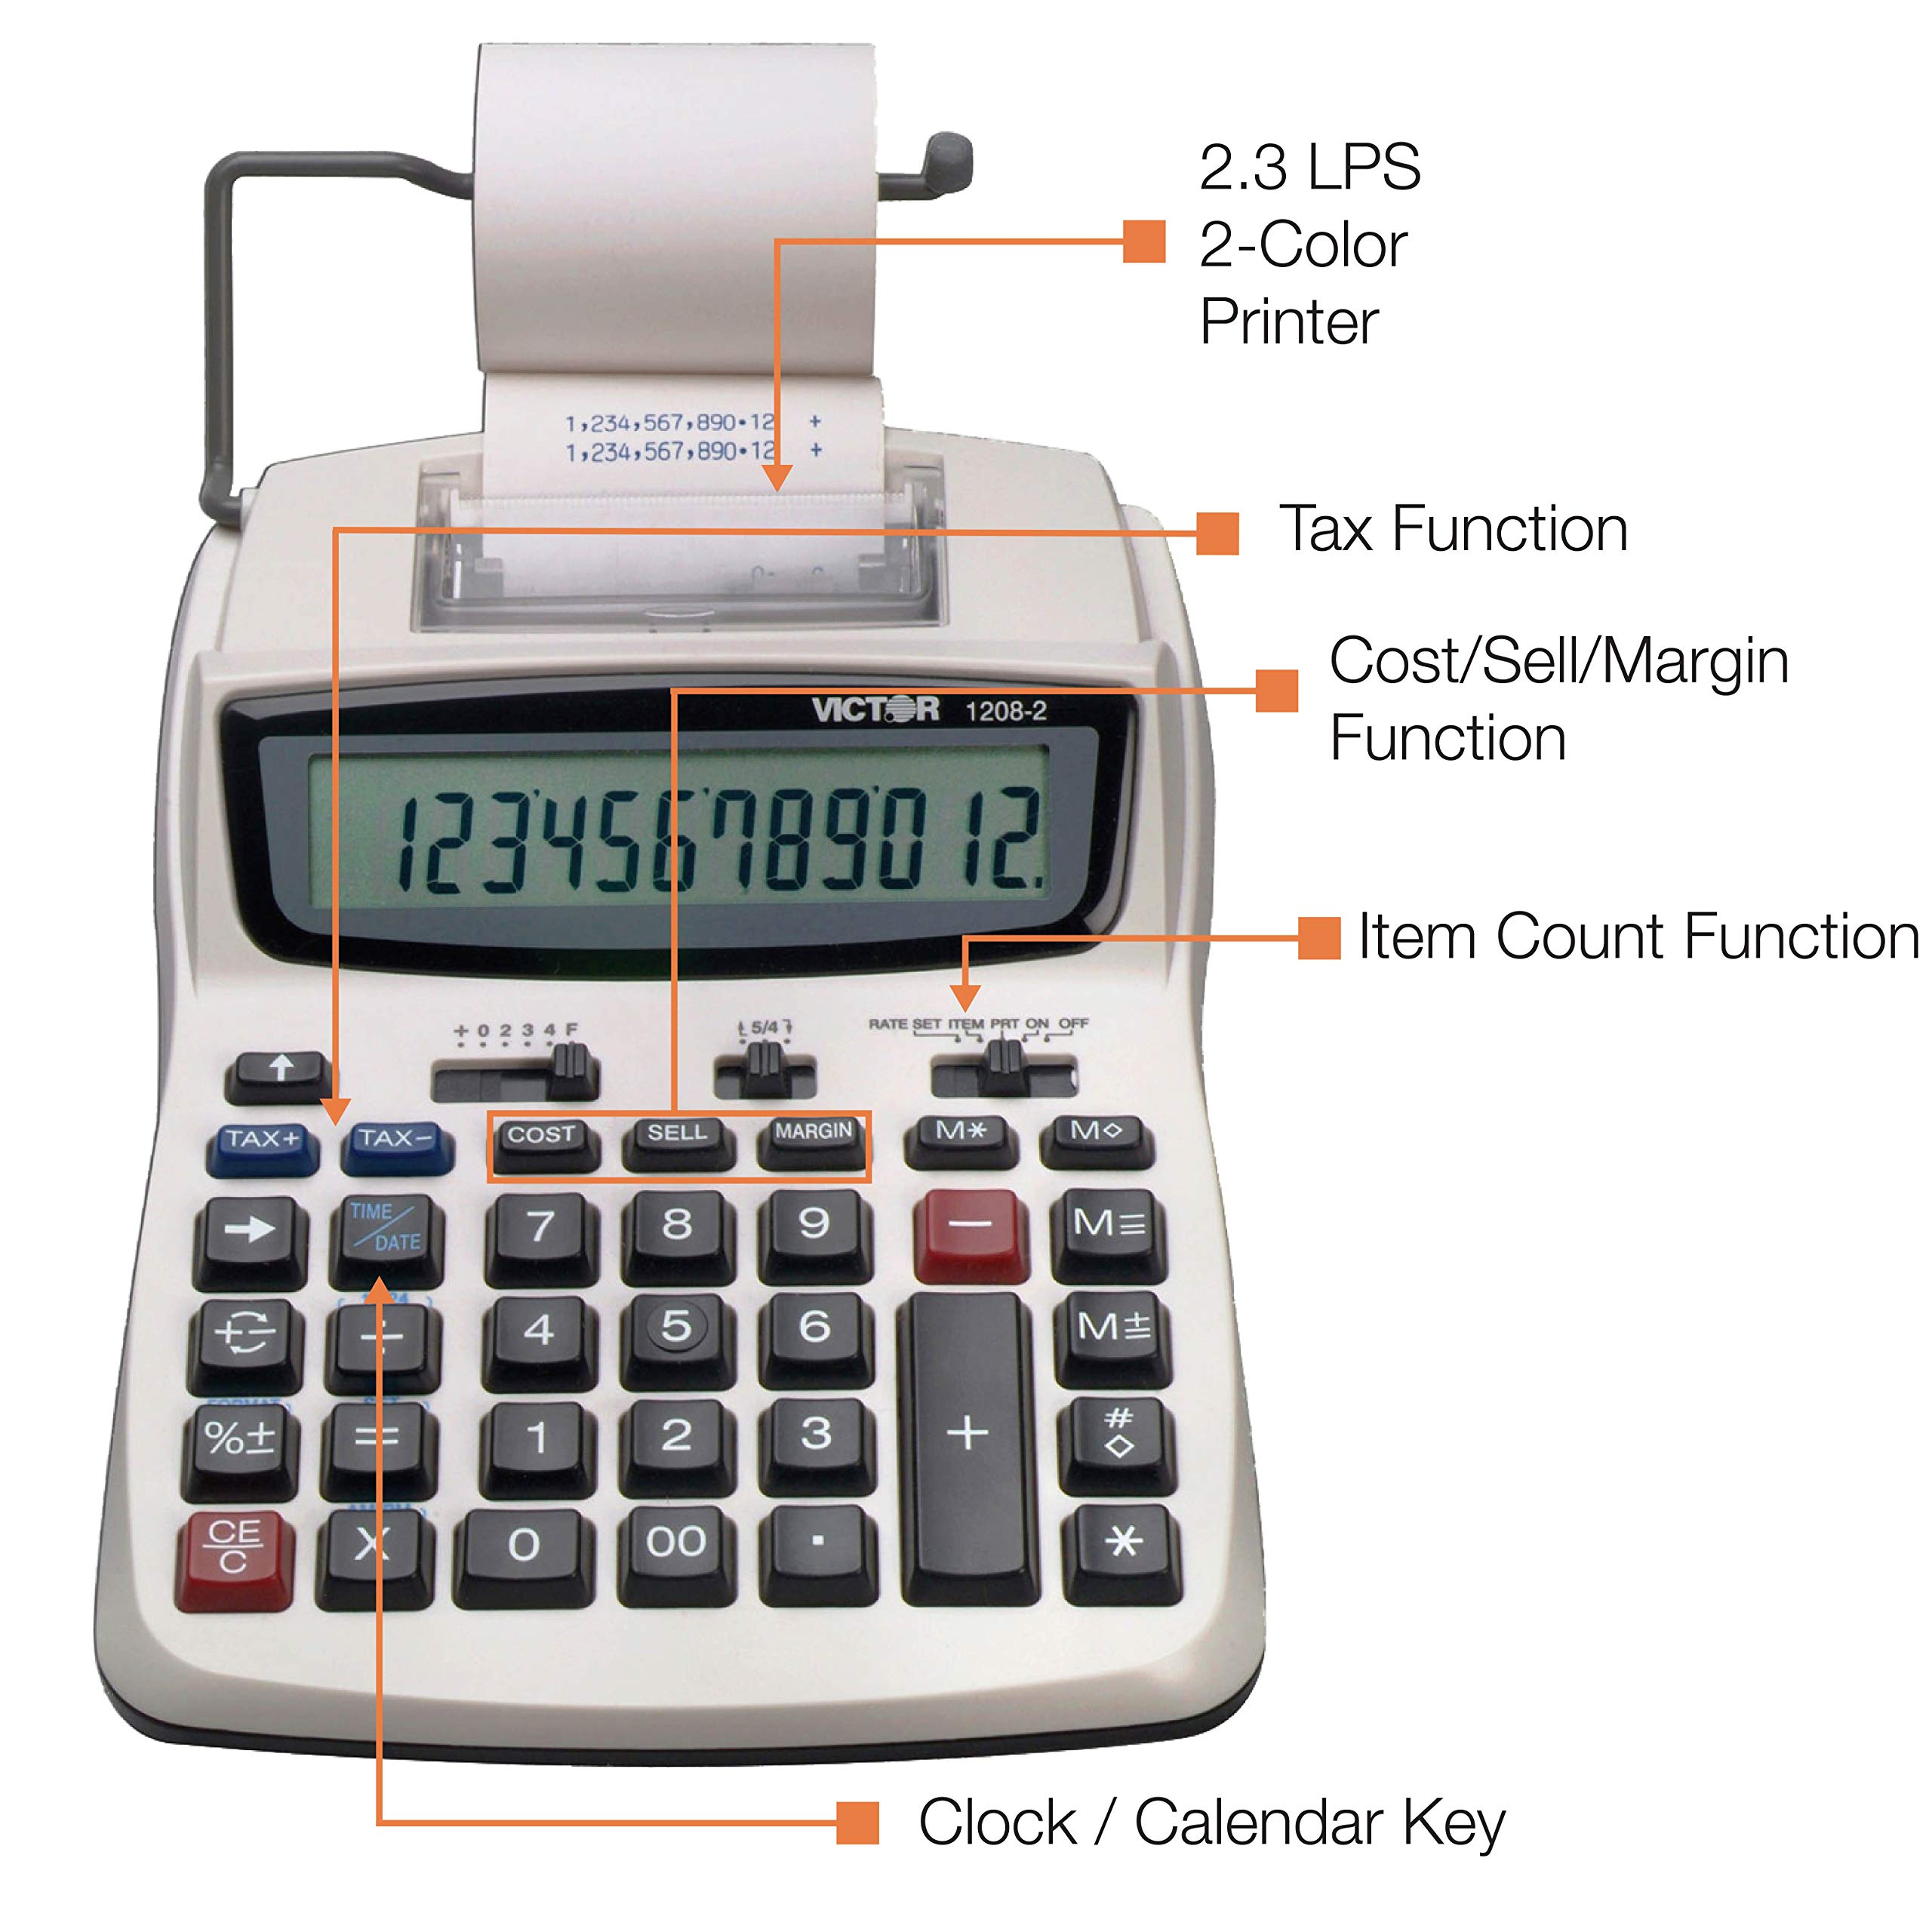 Victor Printing Calculator, 1208-2 Compact and Reliable Adding Machine with 12 Digit LCD Display, Battery or AC Powered, Includes Adapter